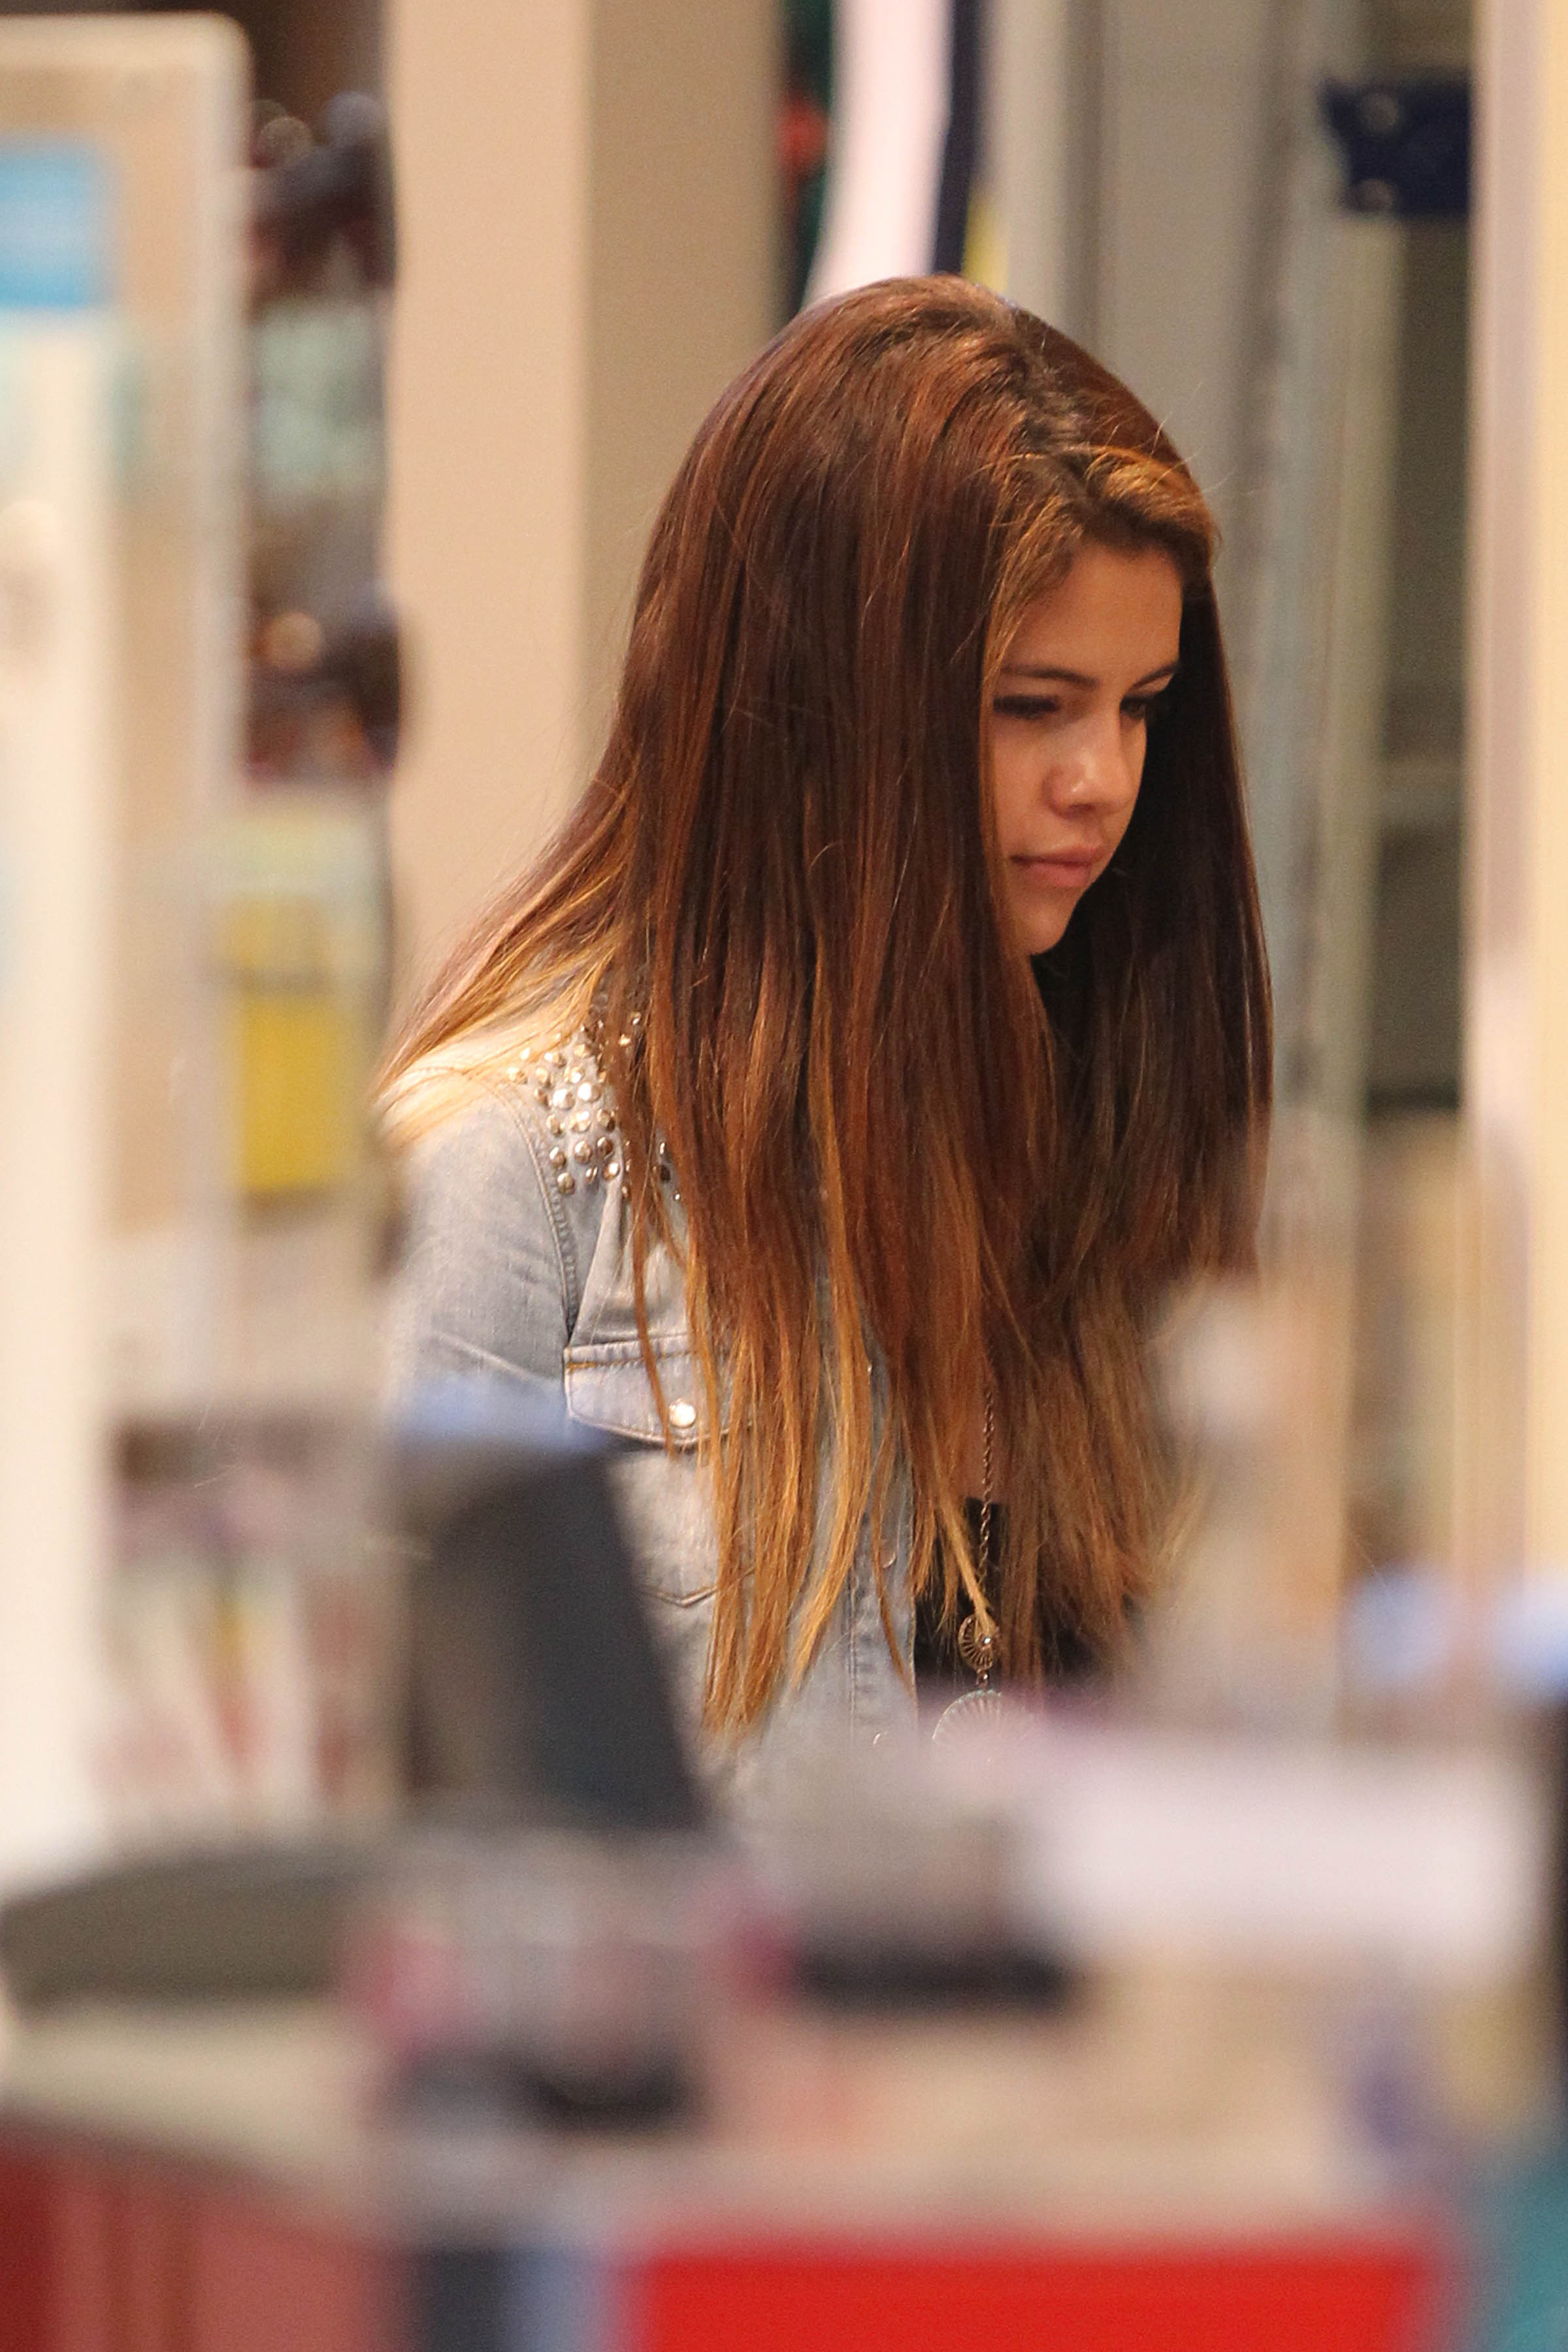 540511470_SelenaGomez07172012ShoppinginSydney7_122_223lo.jpg